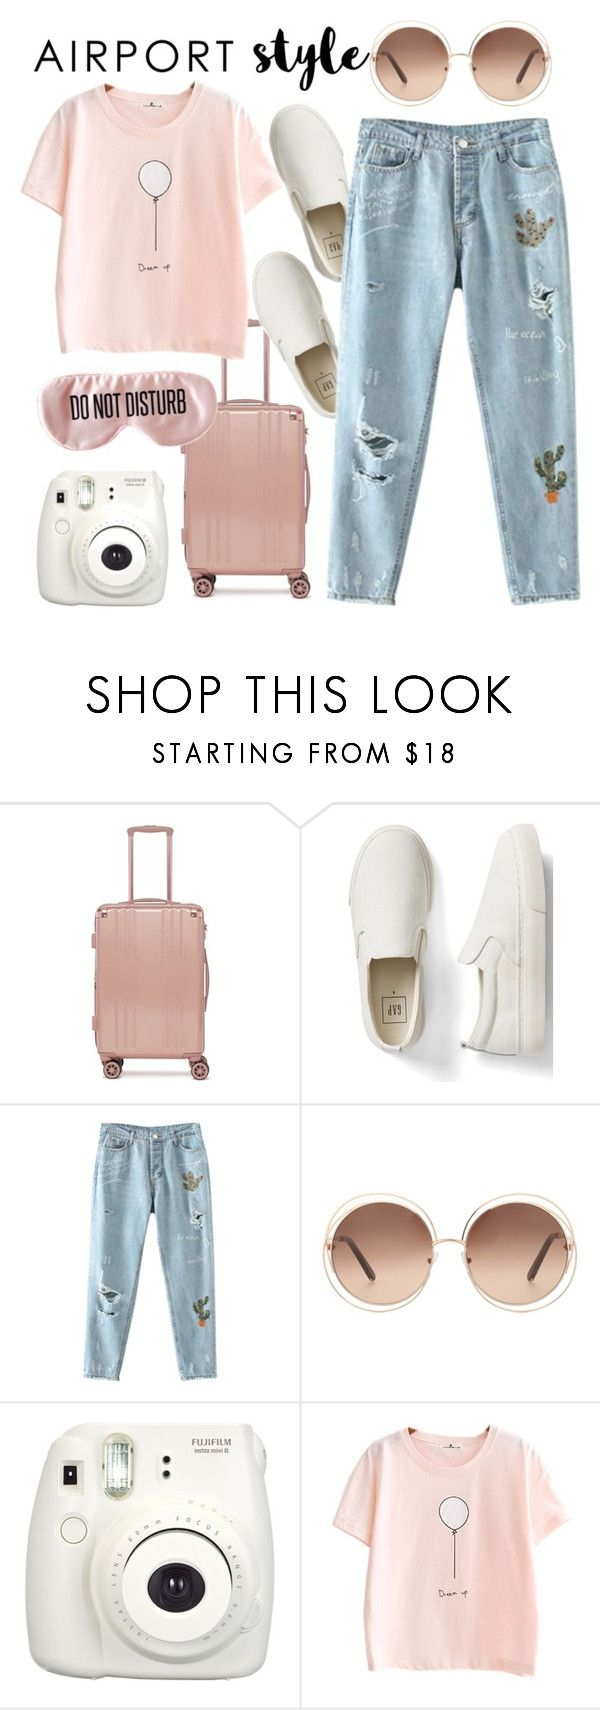 """""""Airport Style"""" by mimas-style ❤ liked on Polyvore featuring CalPak, Gap, Chloé, Fujifilm and BaubleBar"""